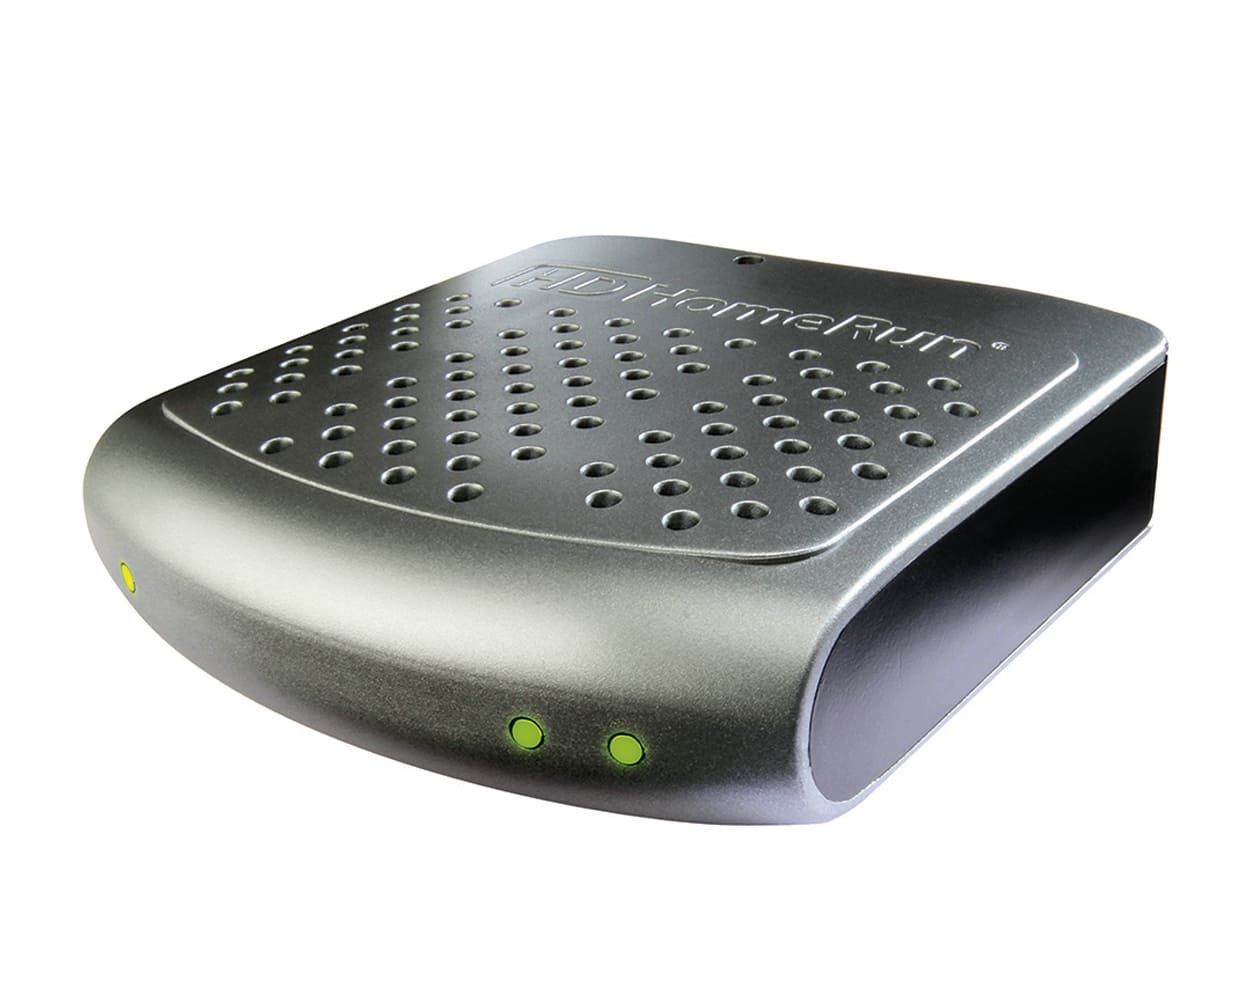 HDHomeRun - Connect OTA 2 Tuner DVR - $69.99